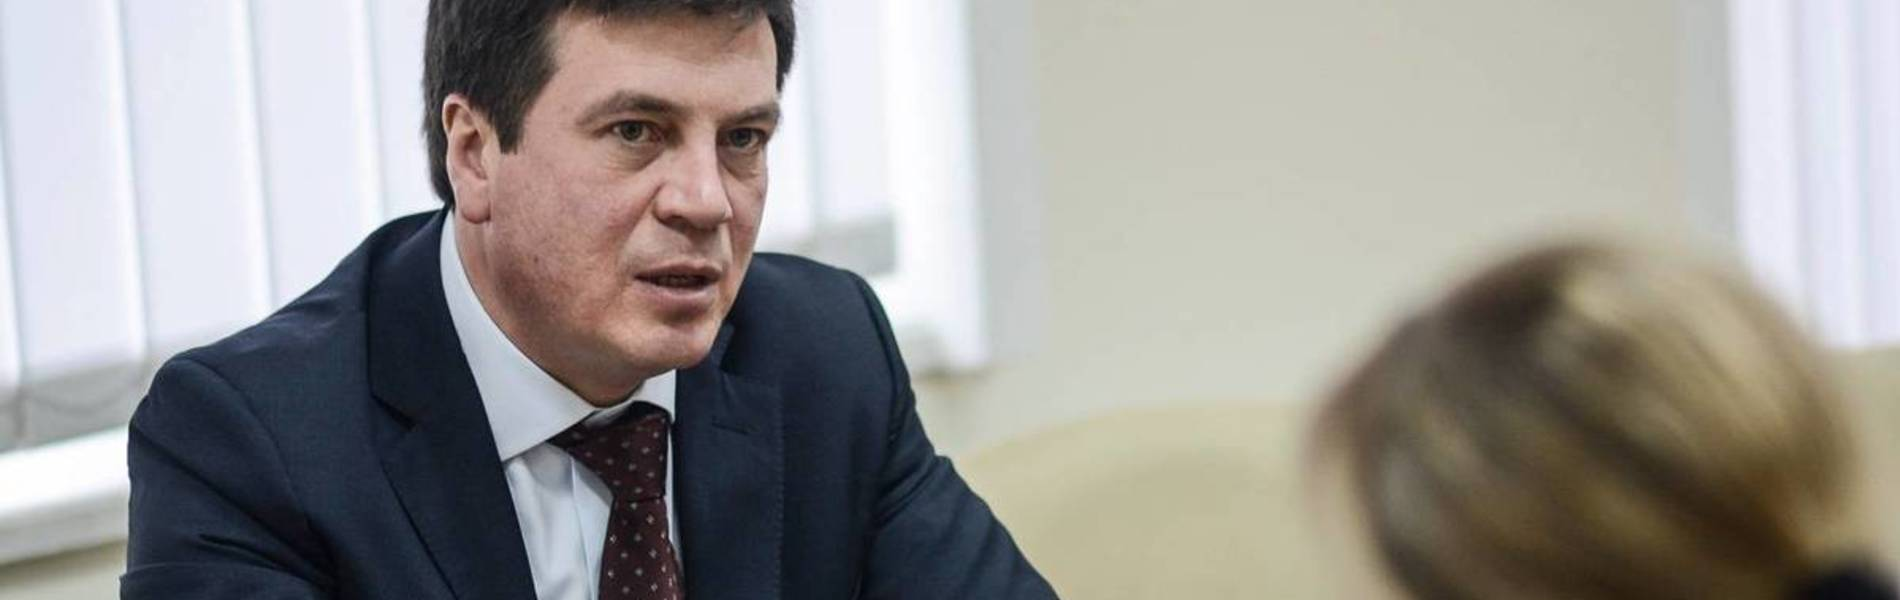 It takes time for hromadas to feel their strength, - Hennadii Zubko in his interview with Ukrinform